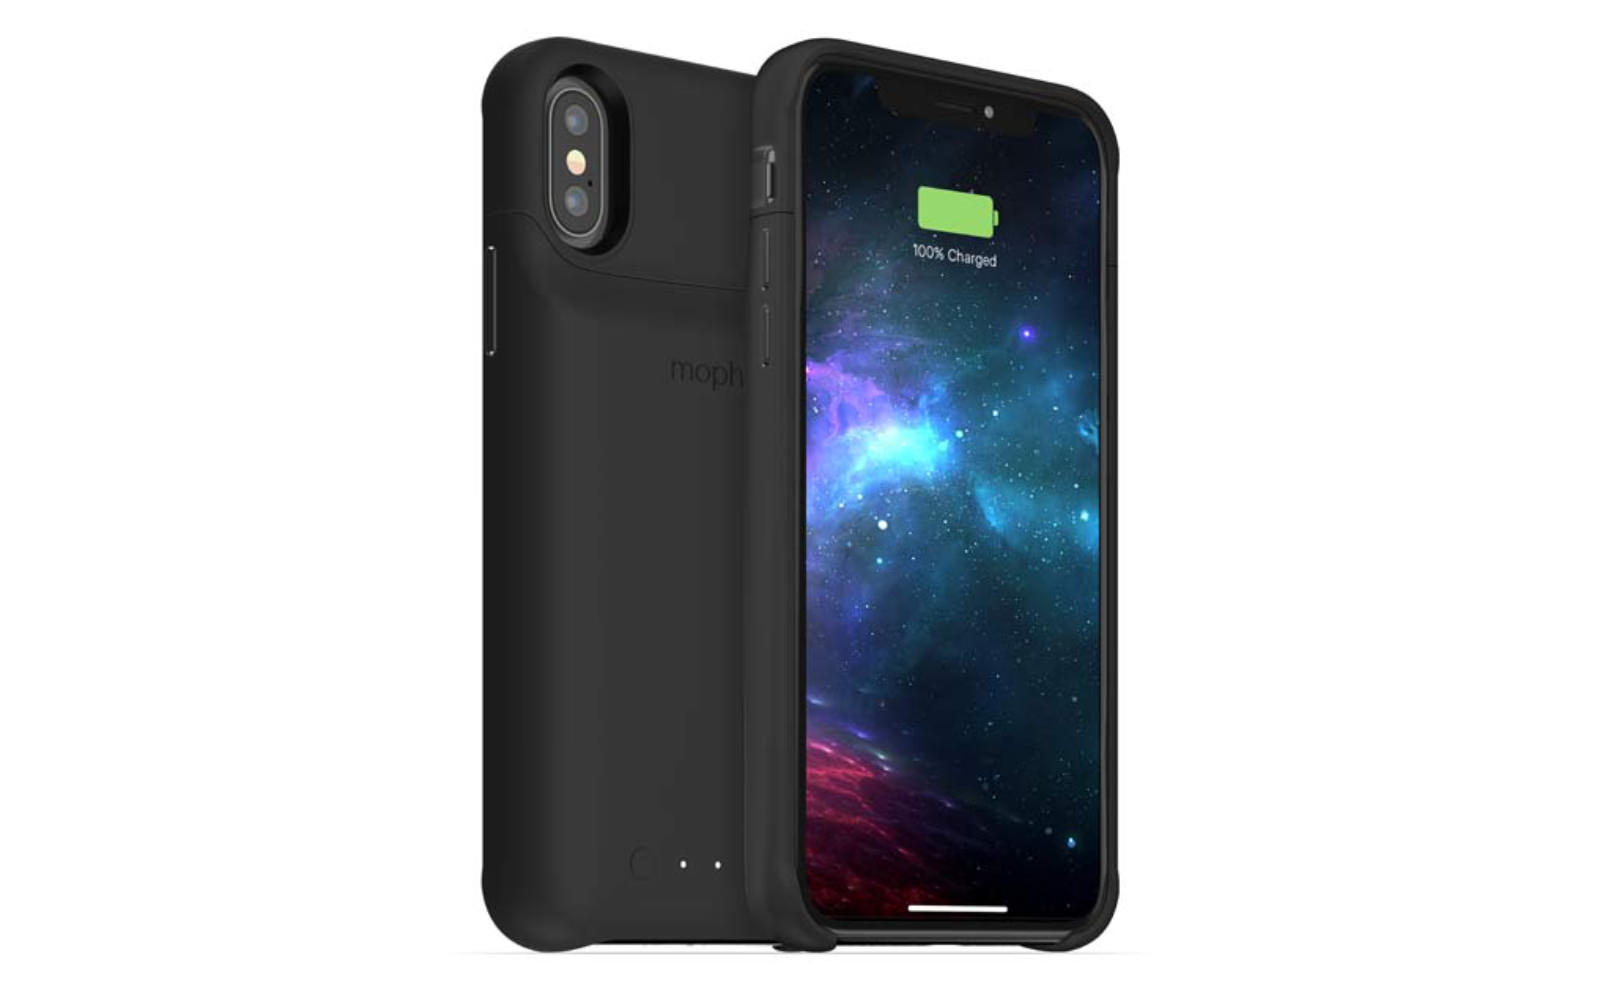 Mophie-battery-pack-for-iphonexs-series.jpg